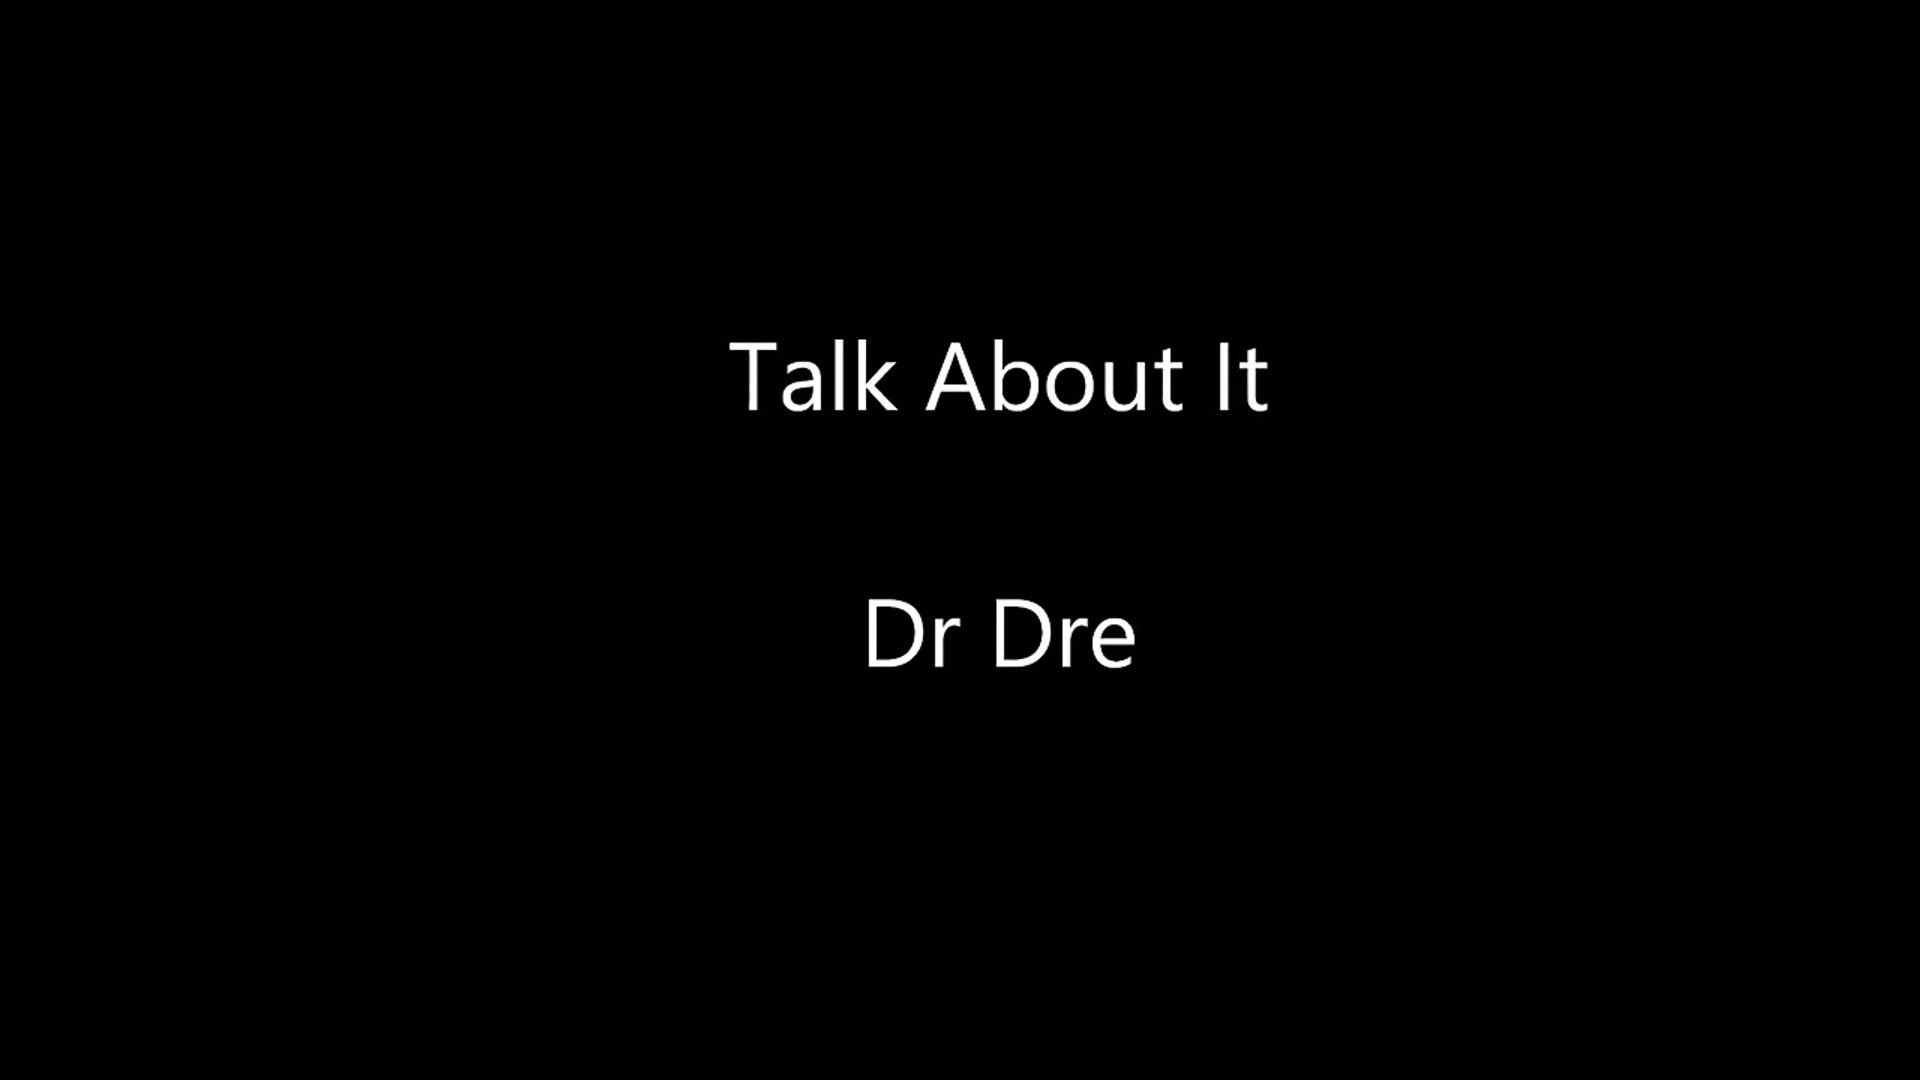 Dr Dre Ft. Justus & King Mez Talk About It Lyrics